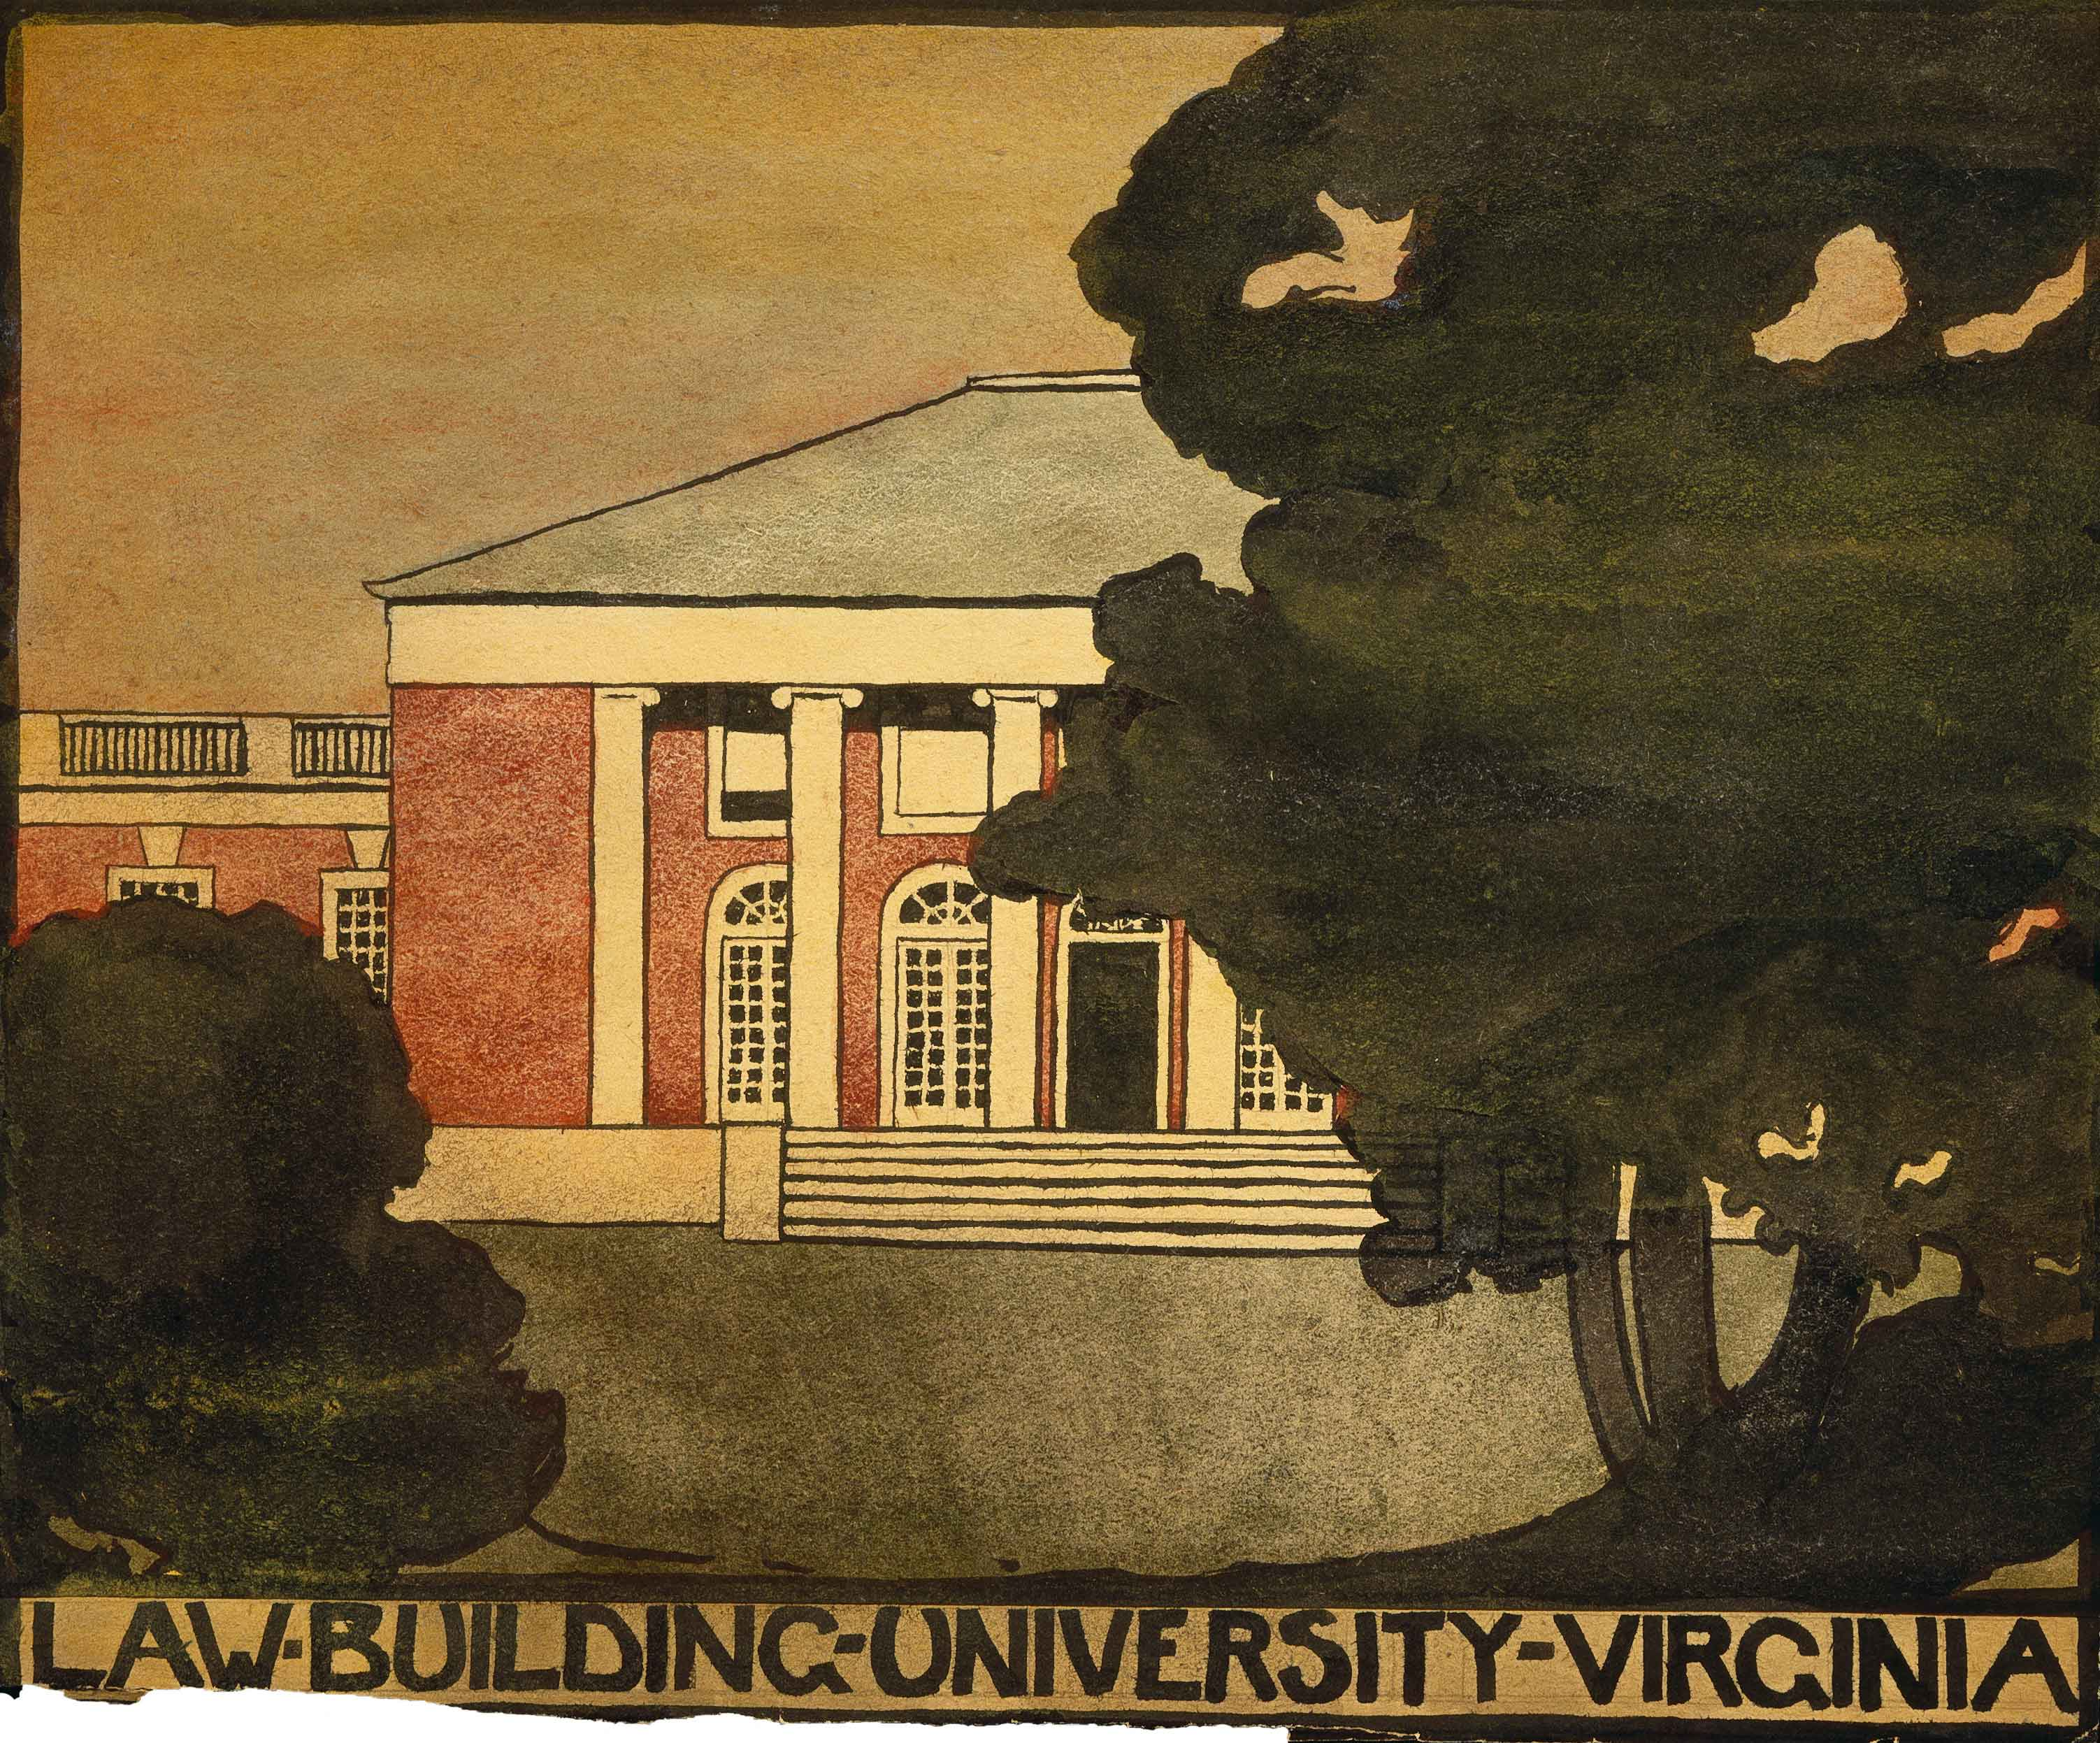 Untitled (Law Building - University of Virginia), 1912-1914, Georgia O'Keeffe, Watercolor on paper